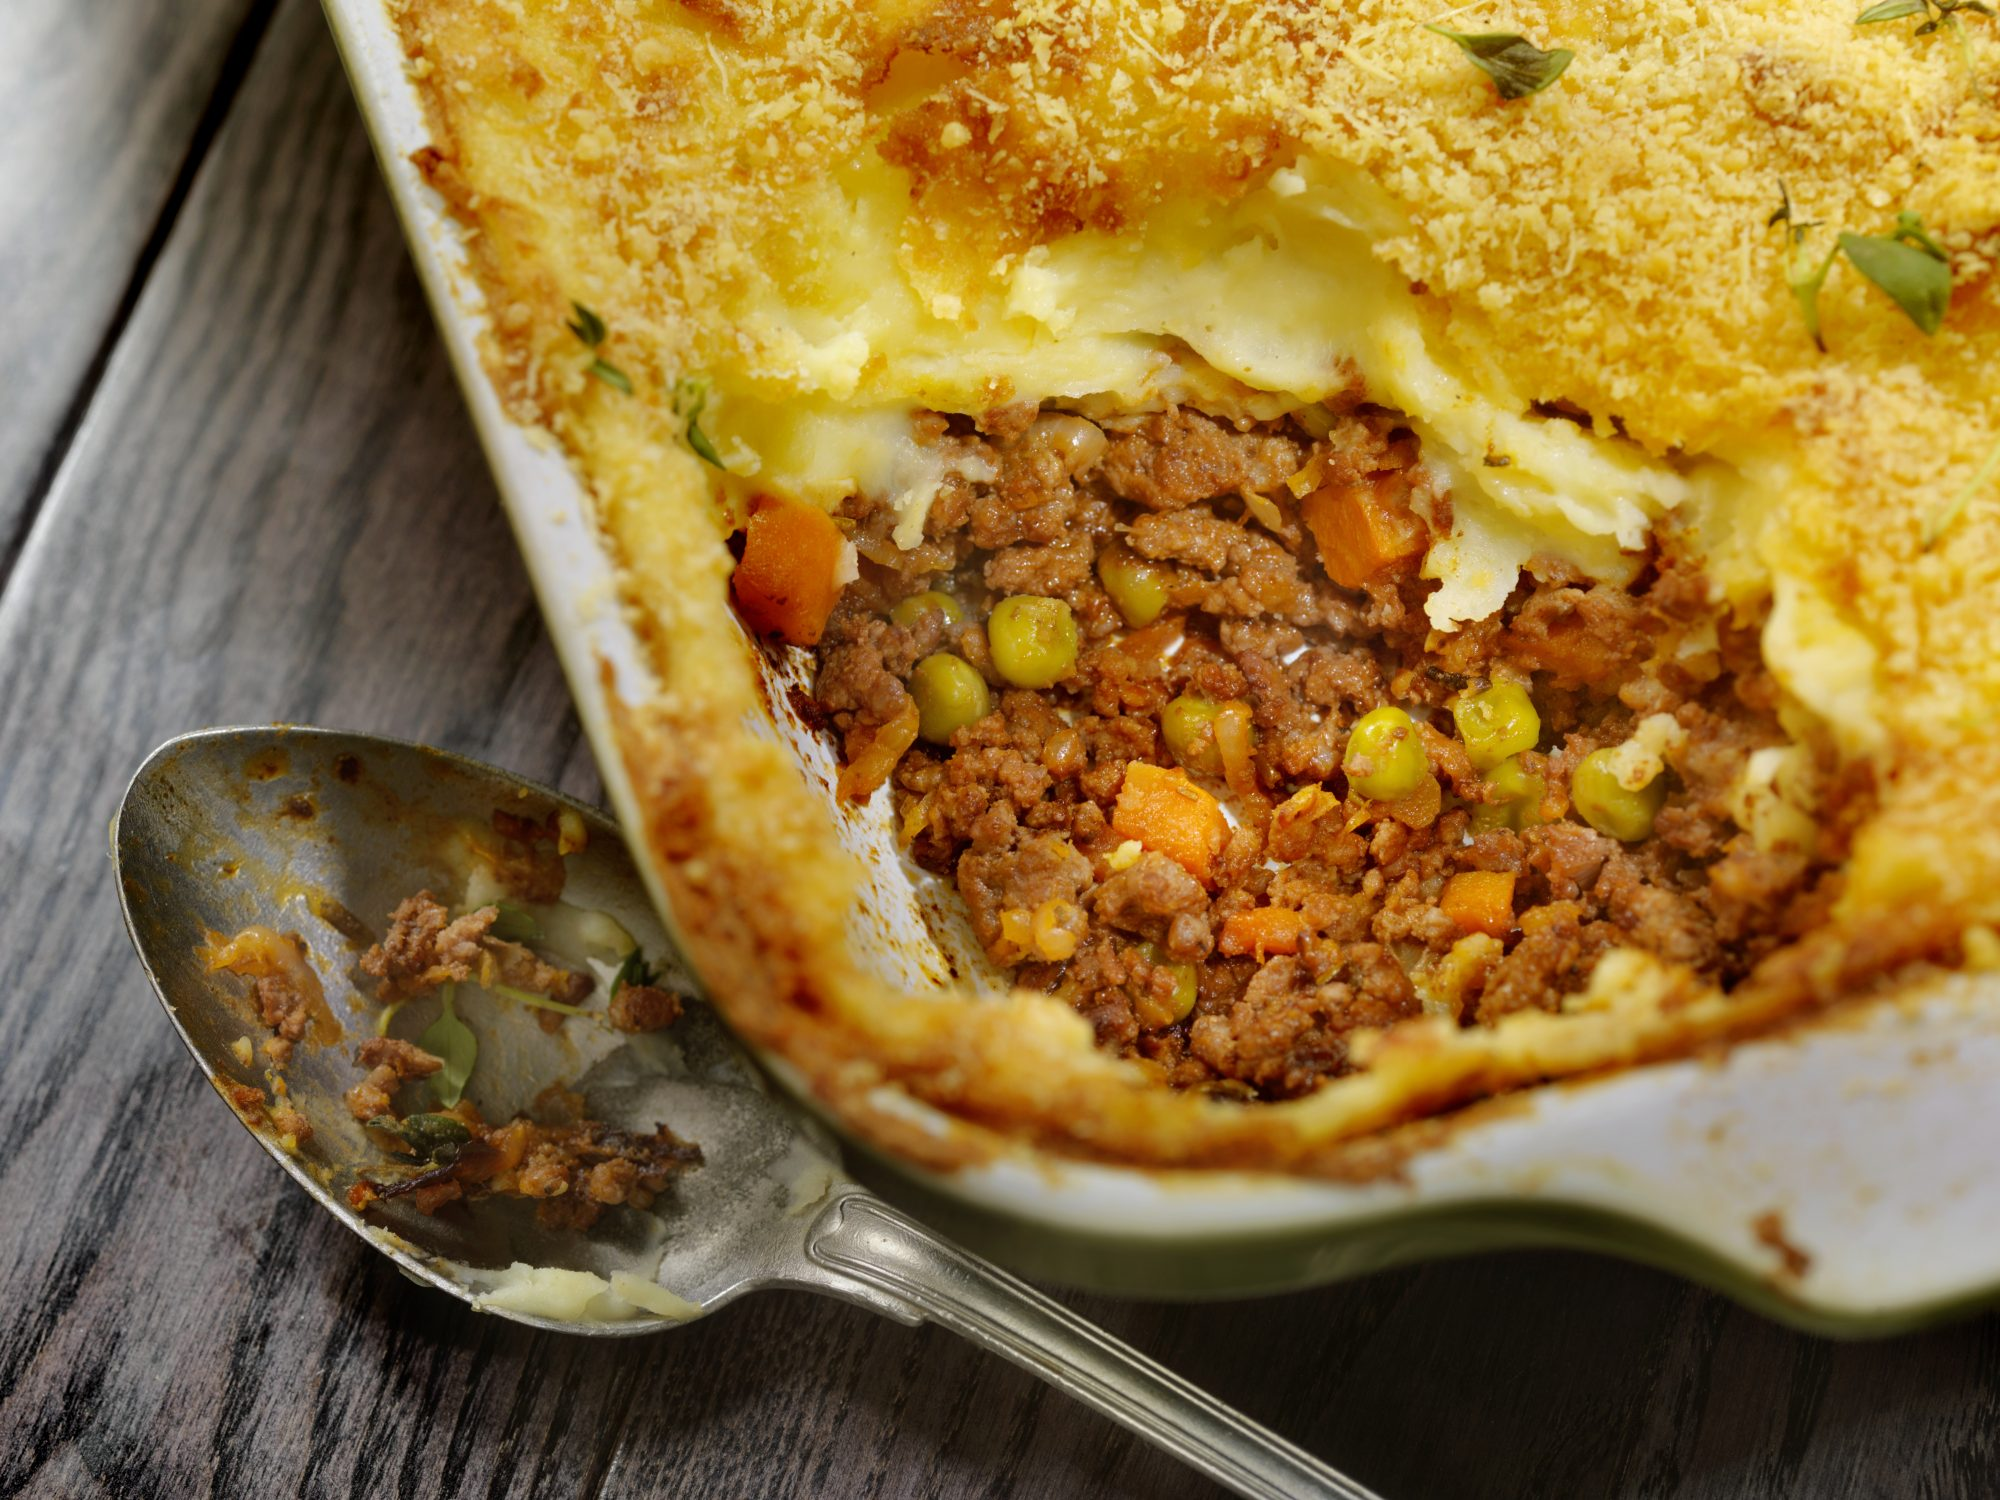 What Is Shepherd's Pie—and How Is It Different From Cottage Pie?